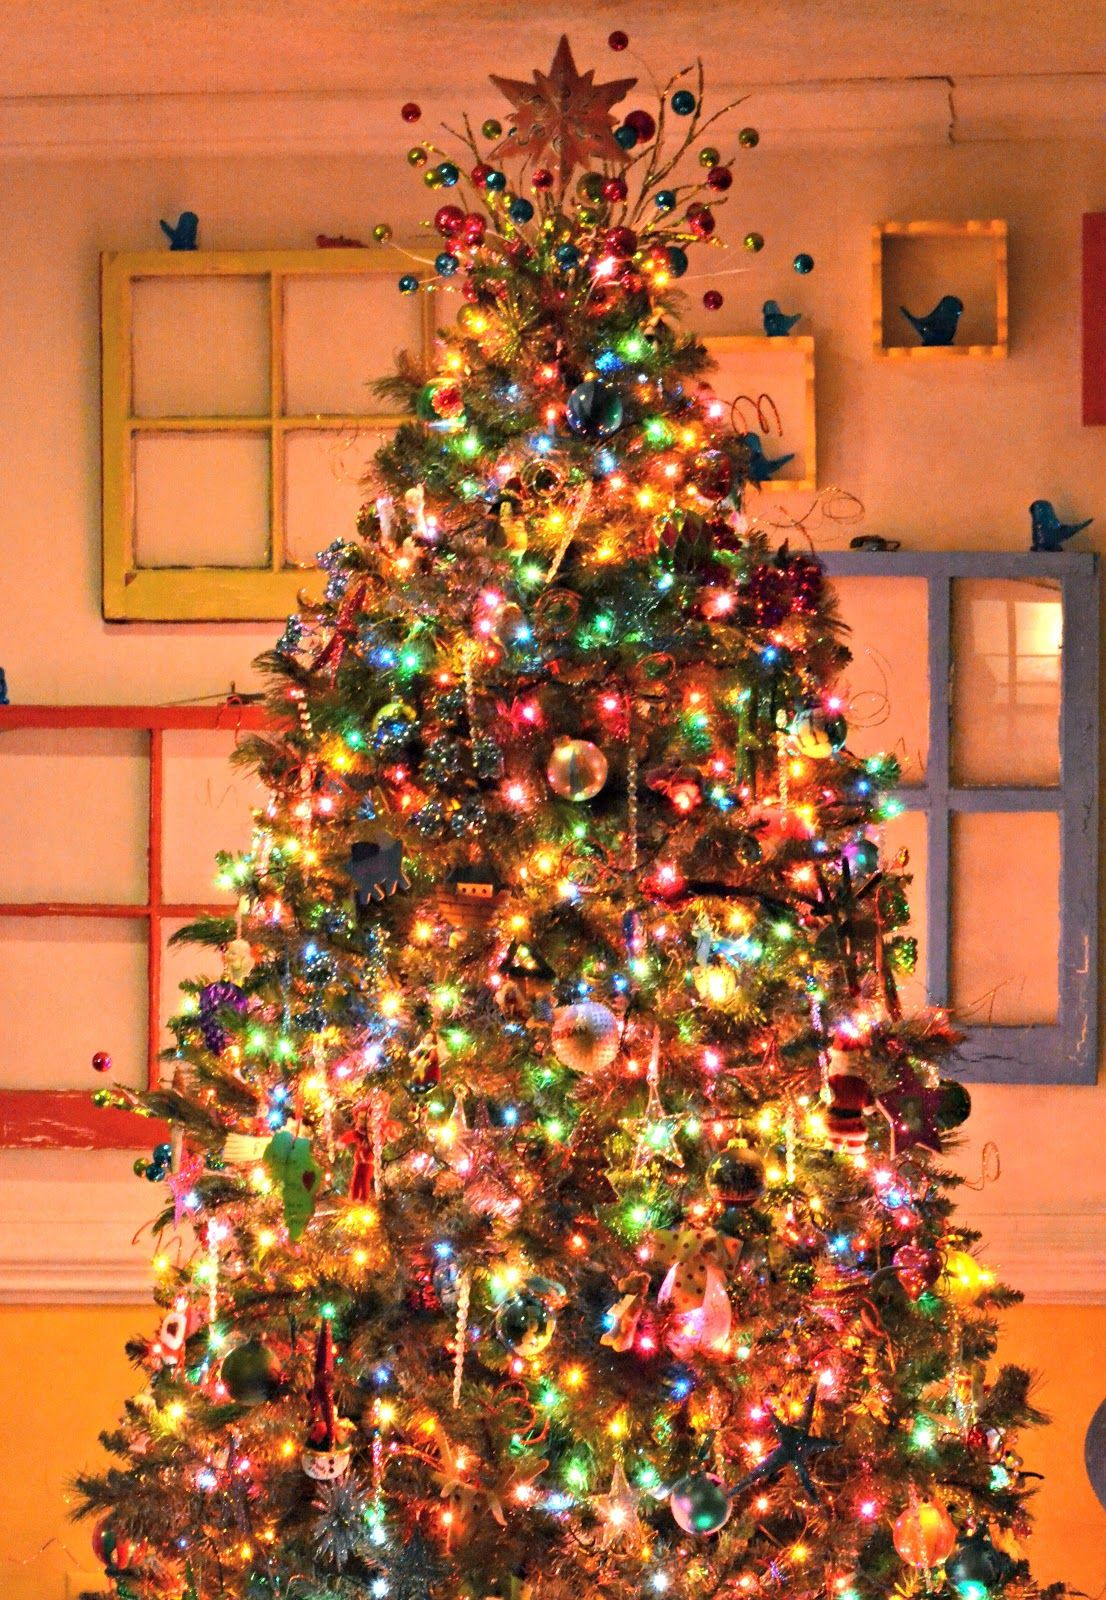 5 tips to decorate a christmas tree minimalist home interior design